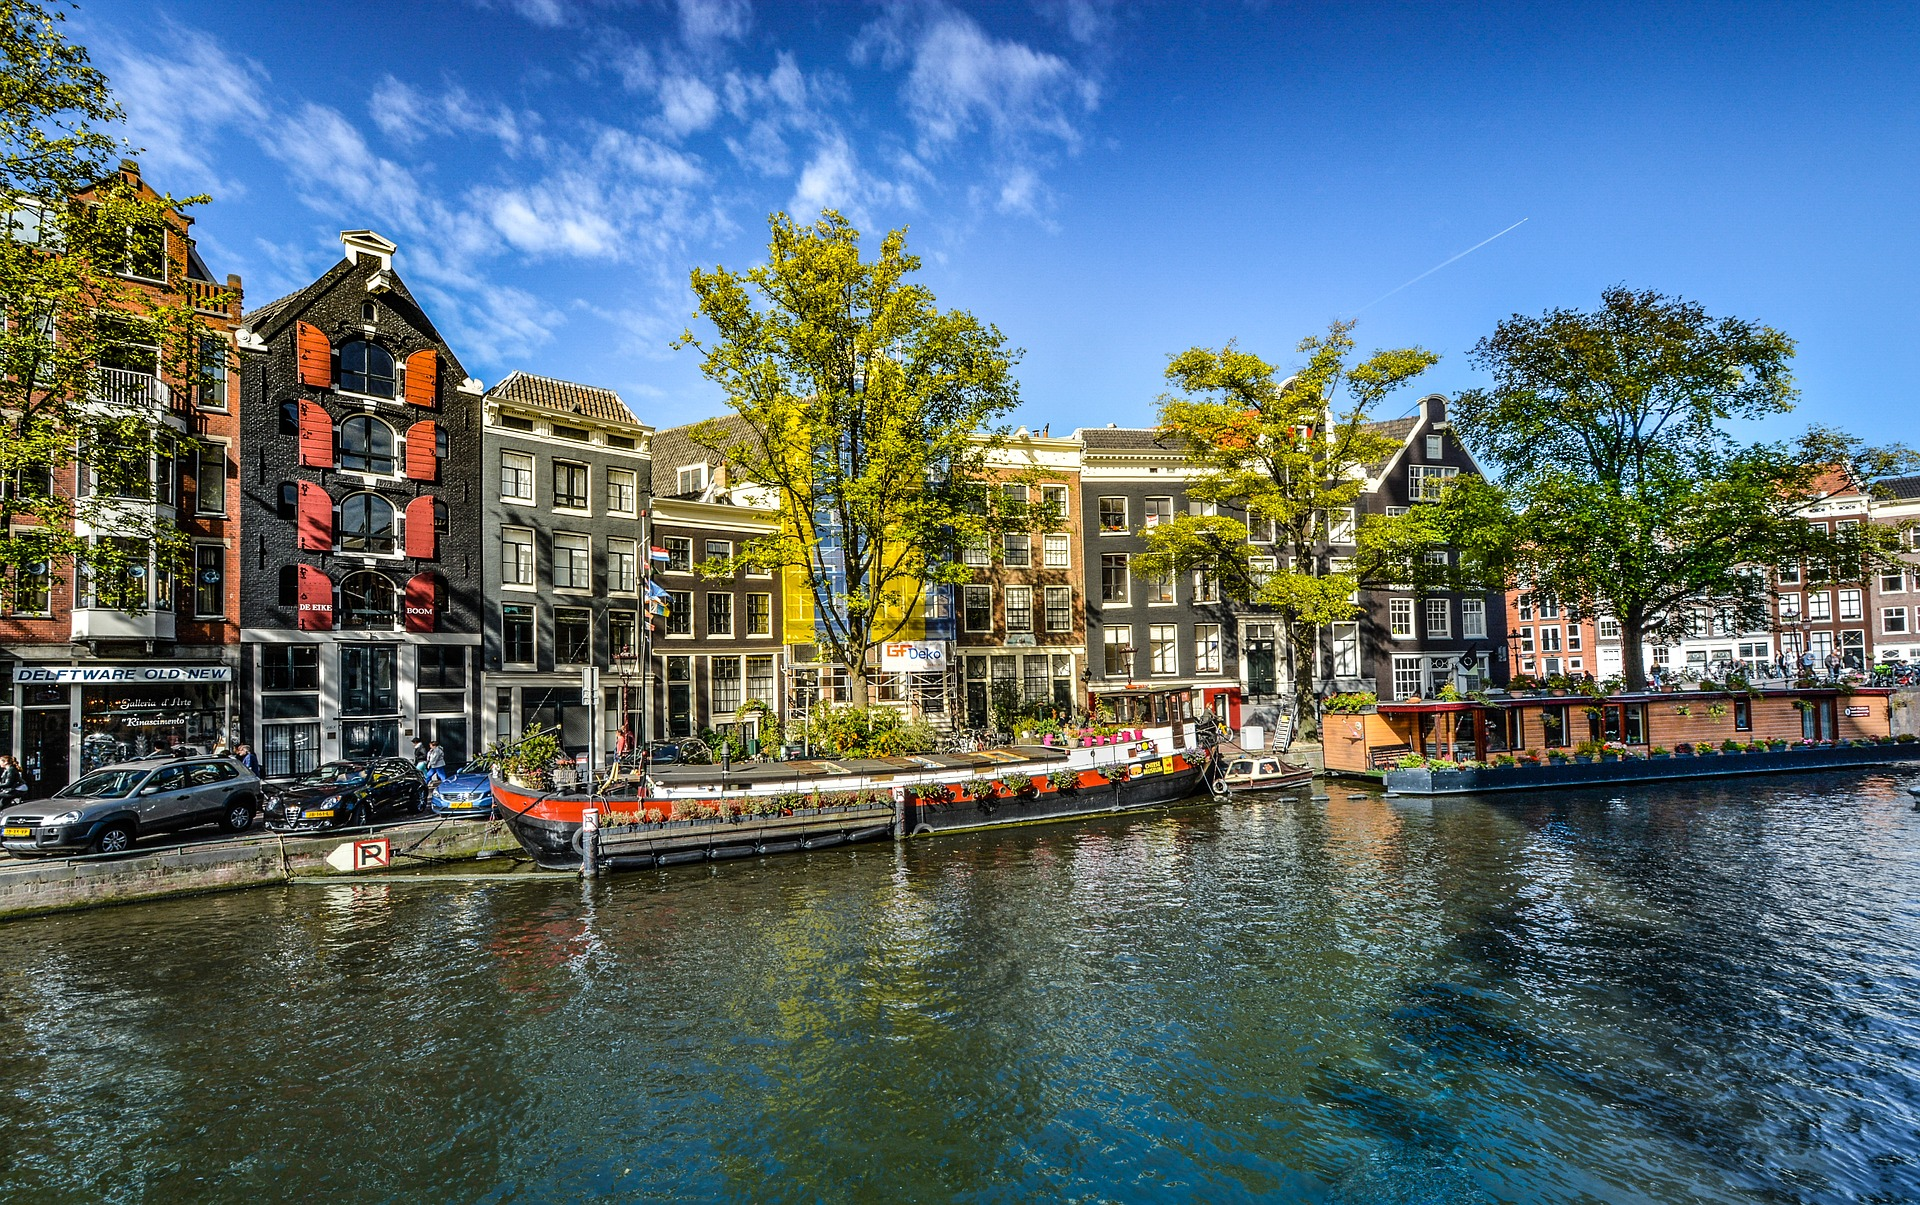 Canal in Amsterdam in the Netherlands